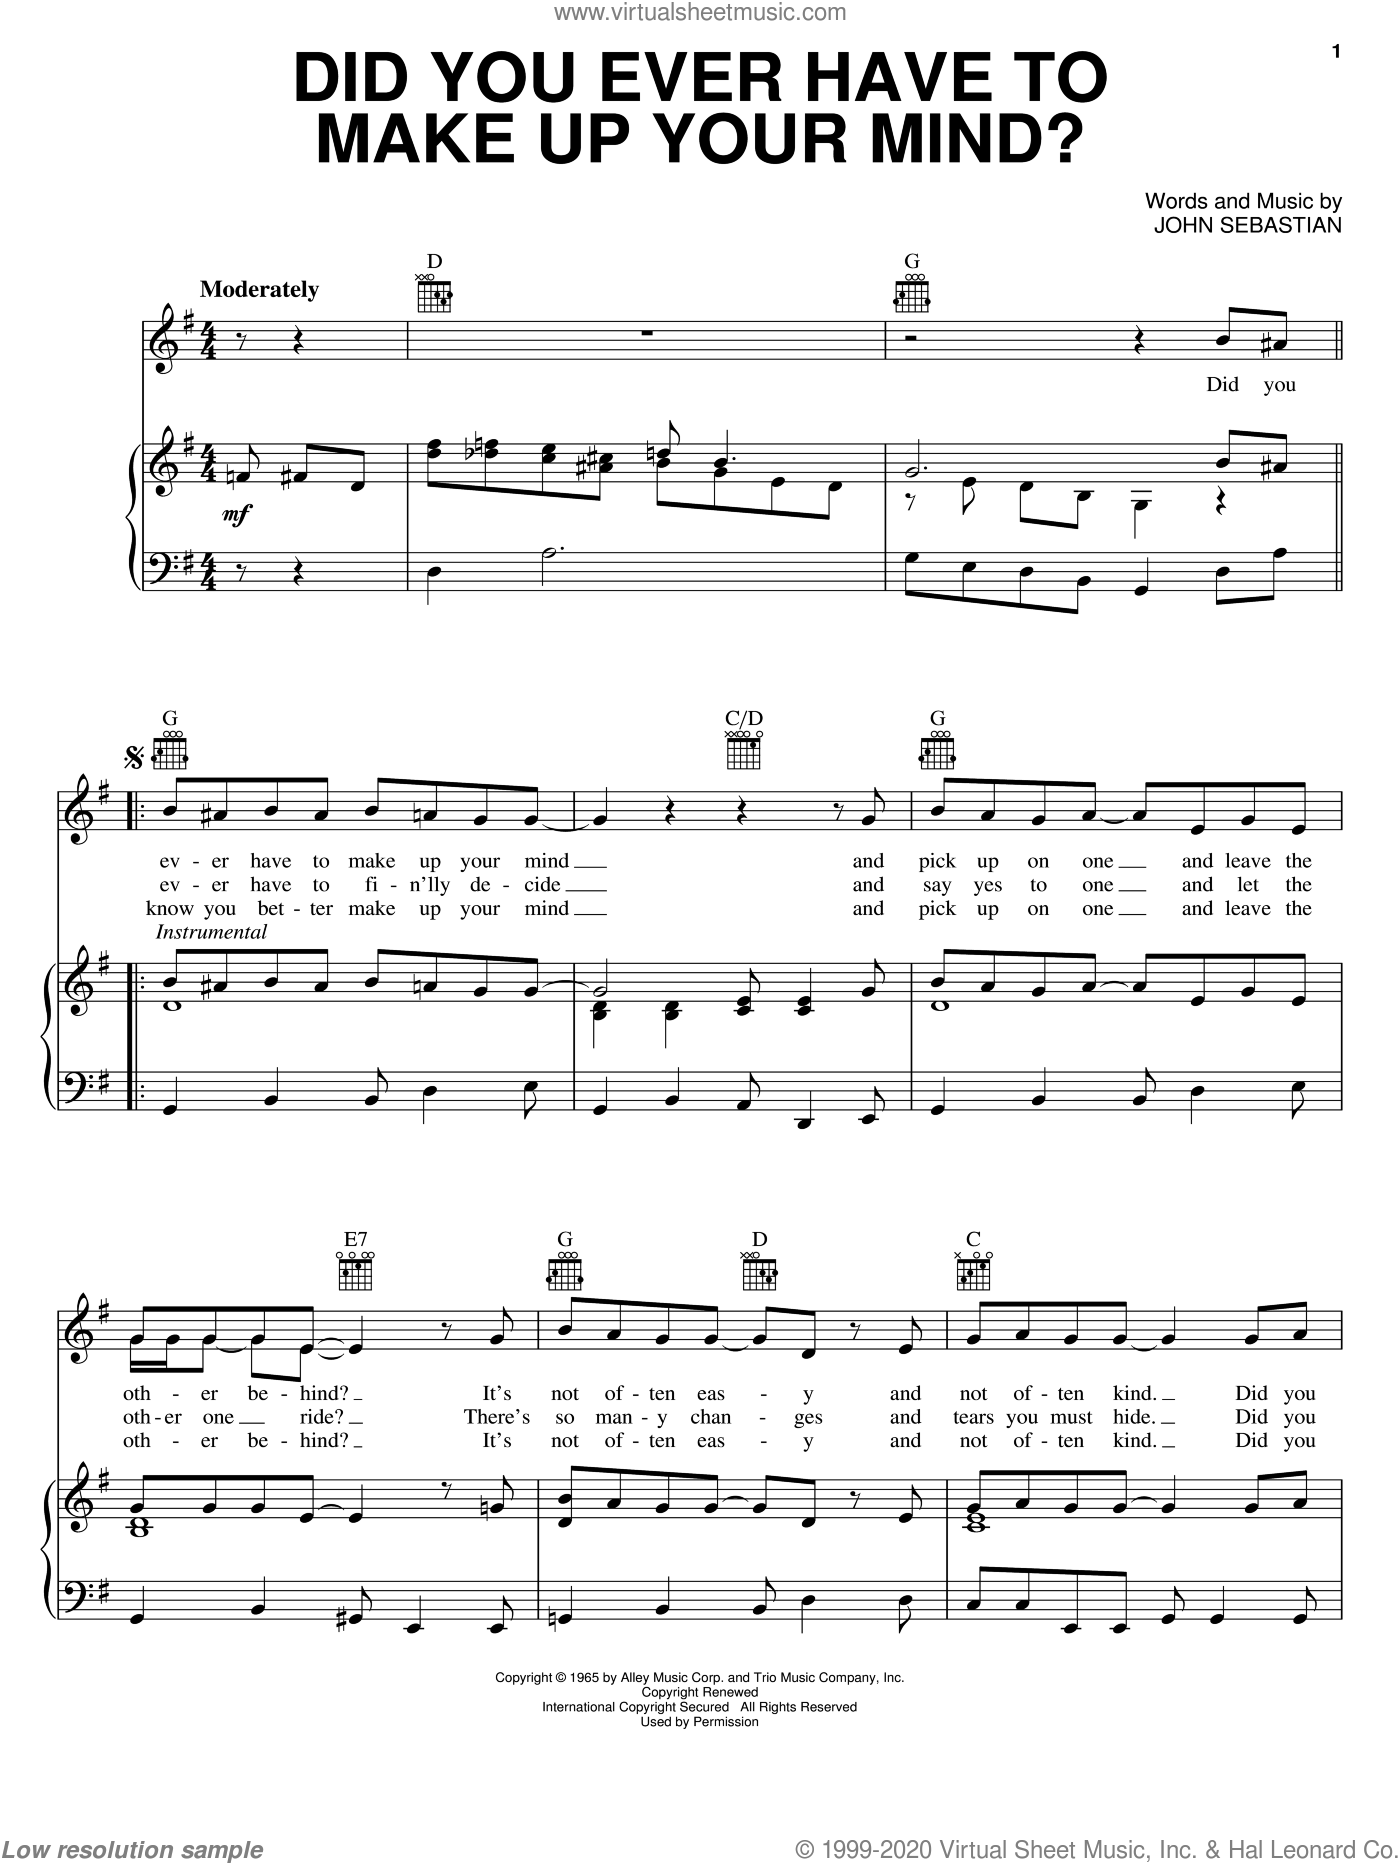 Did You Ever Have To Make Up Your Mind? sheet music for voice, piano or guitar by The Lovin' Spoonful and John Sebastian, intermediate skill level